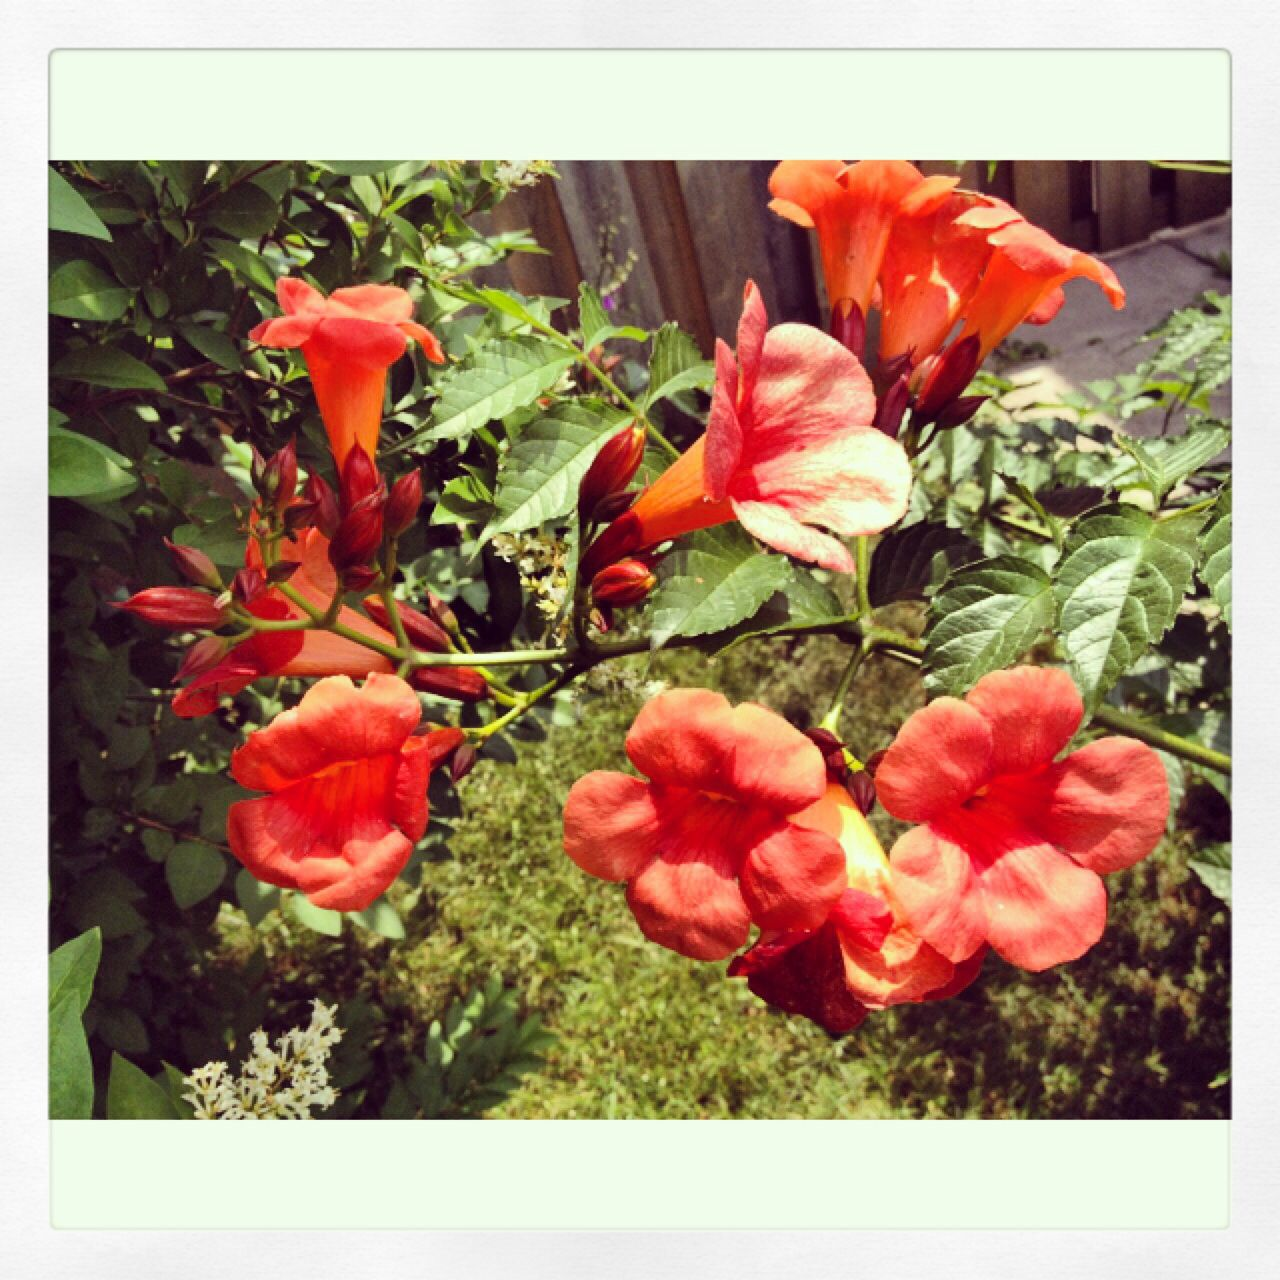 8⃣Beautiful bell flowers. Love how they look. The colour is great.